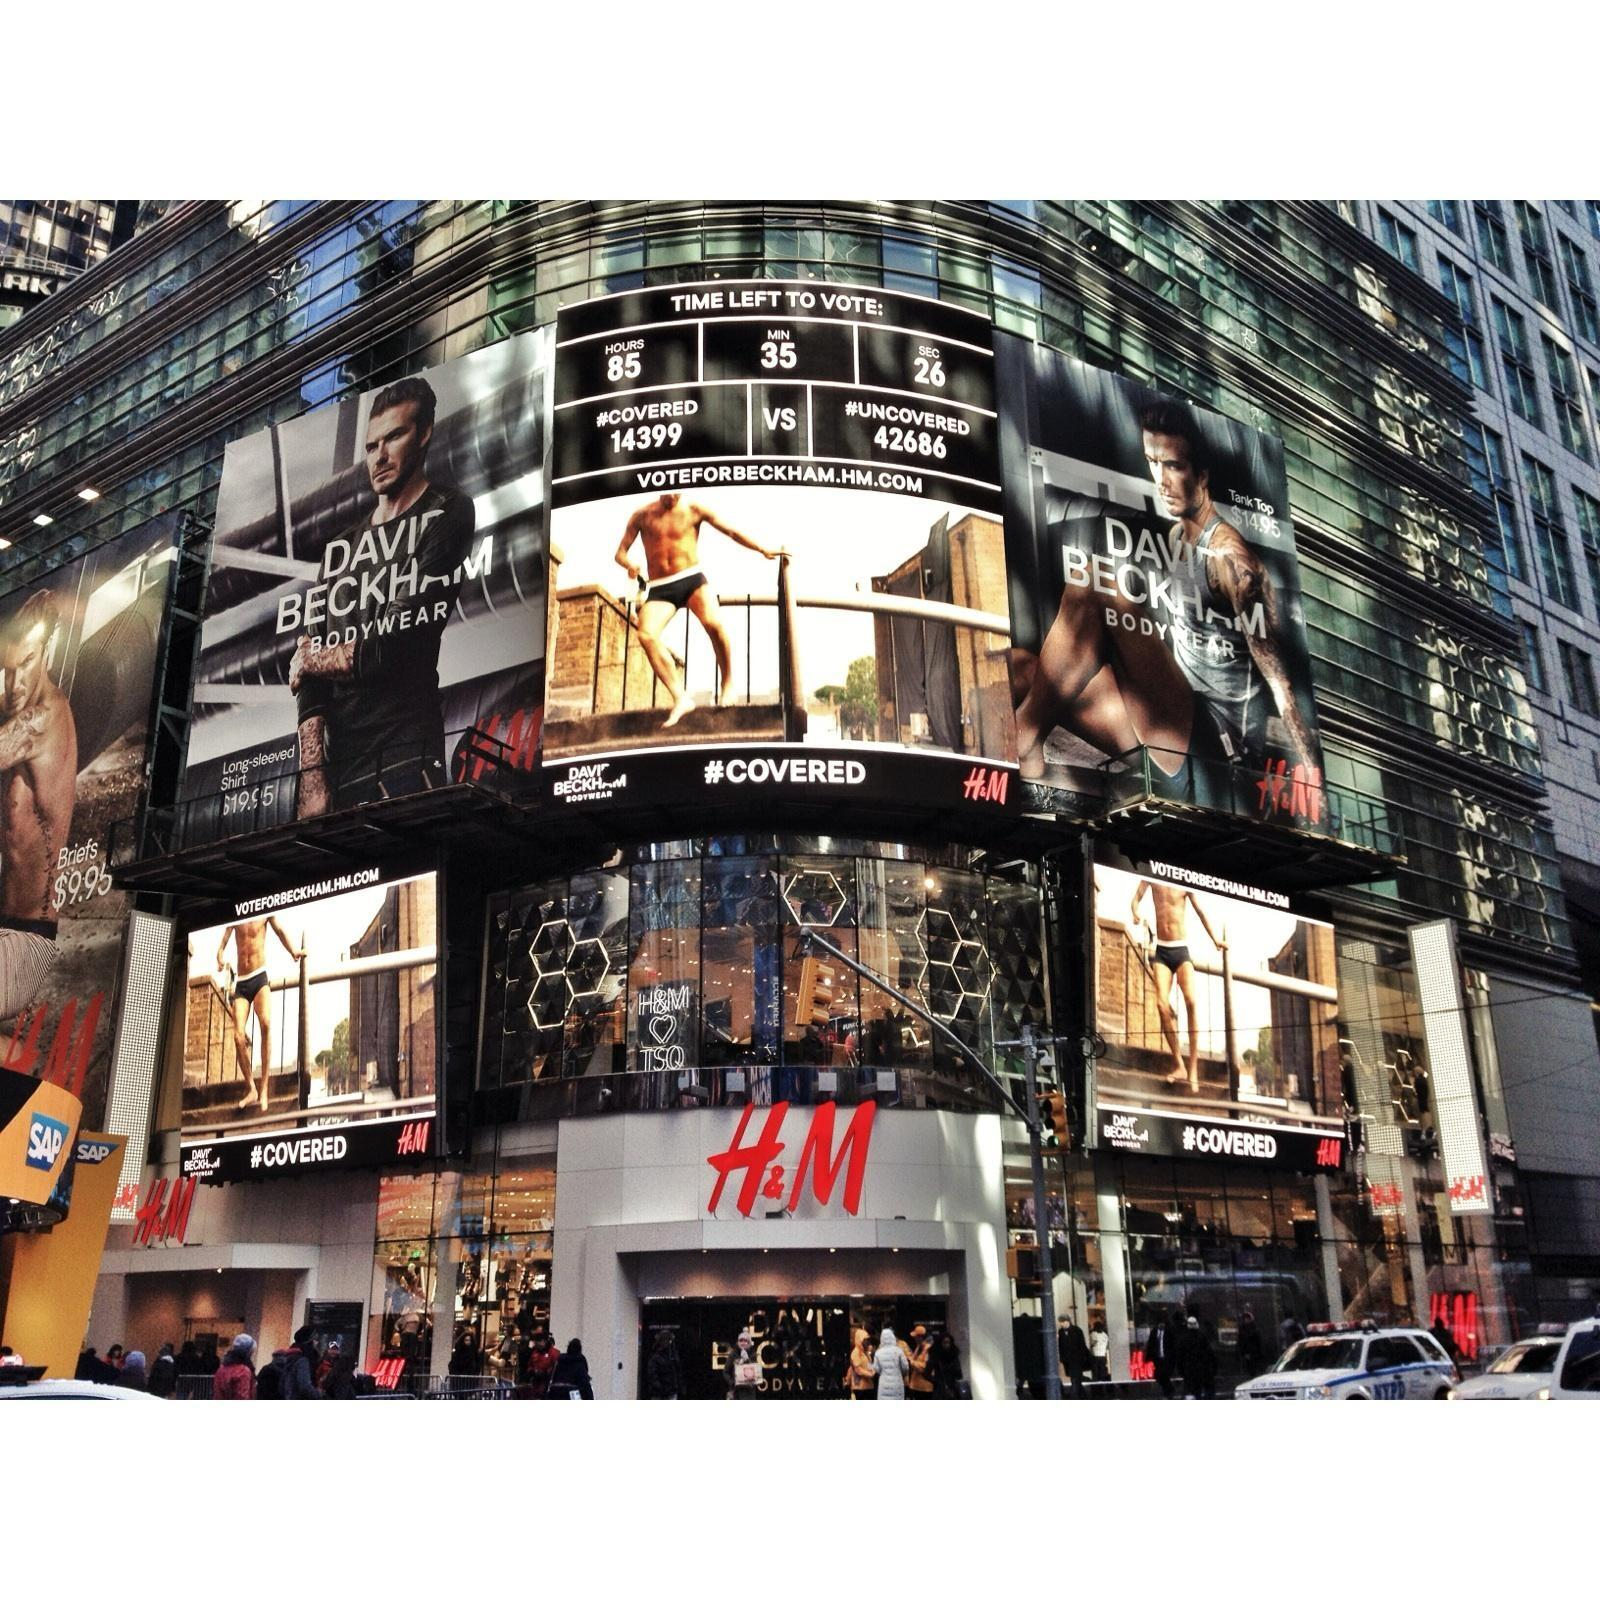 Twitter / hm: Visit H&M in #TimesSquare ...